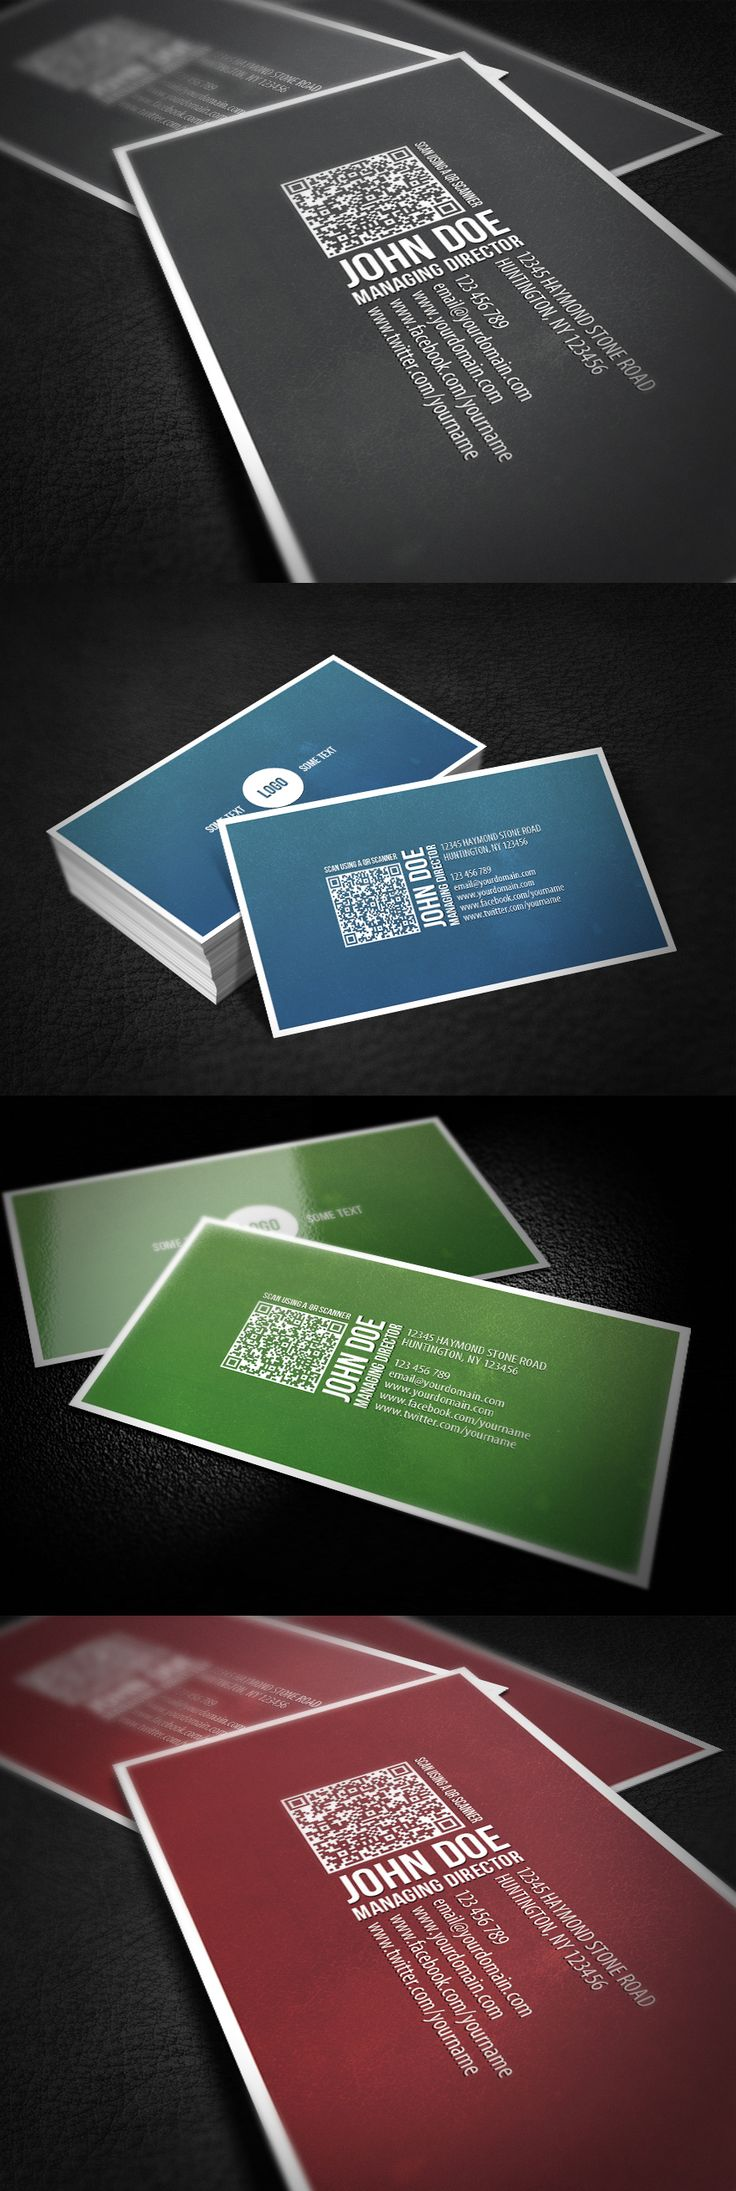 25 Best Qr Code Business Card Ideas On Pinterest Visiting Card